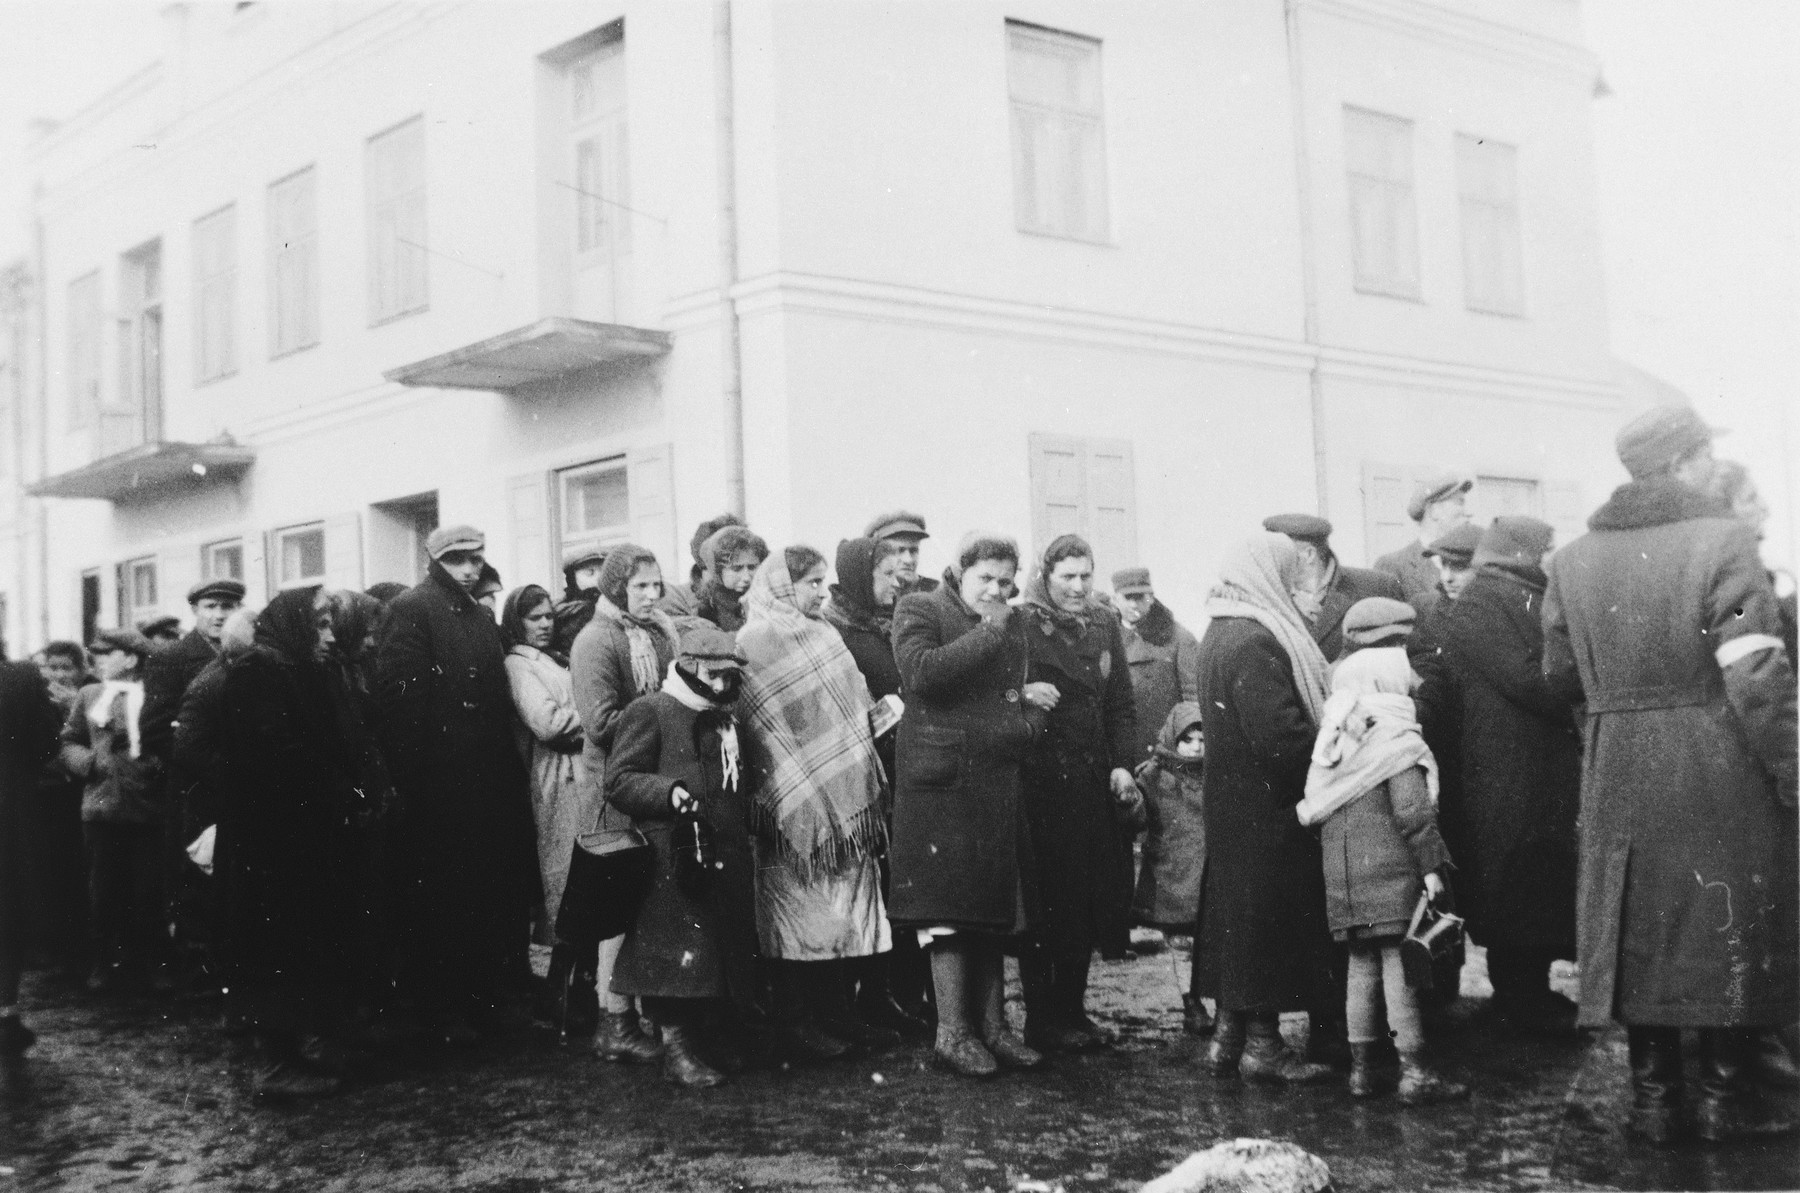 Jews who have been expelled from the town of Plock, wait on a street to be resettled in Chmielnik.